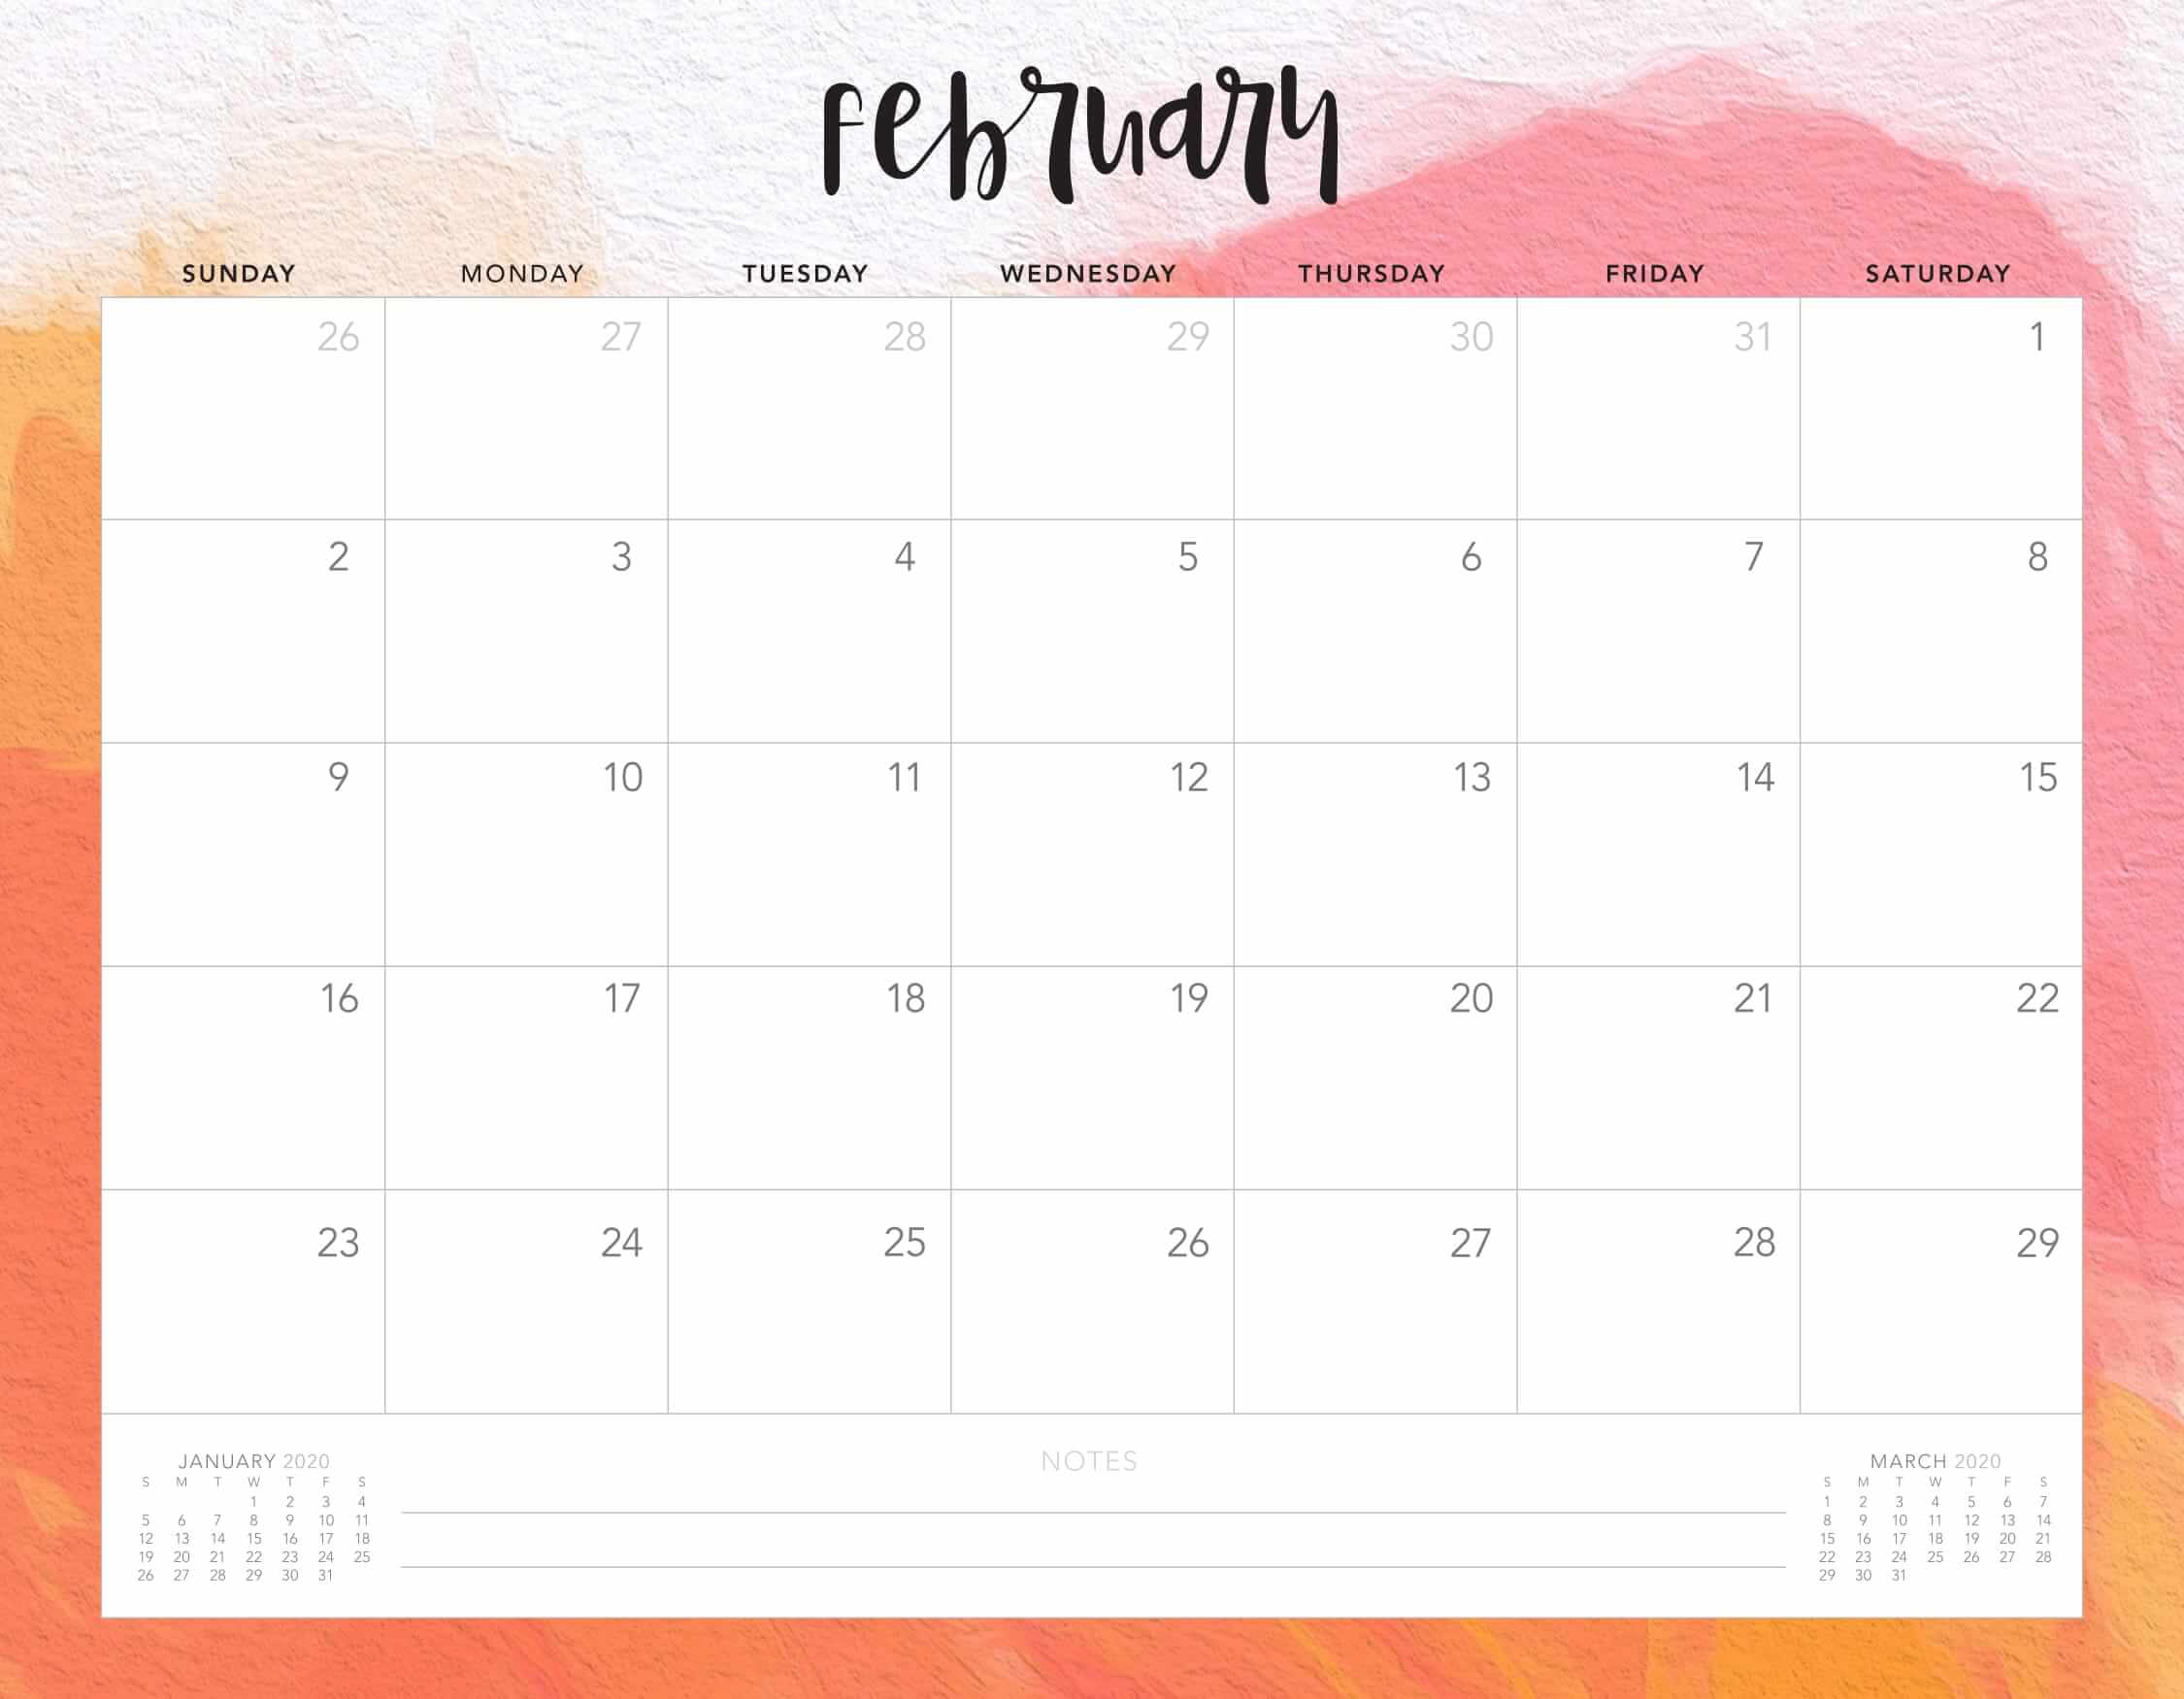 Calendar For February 2020 Holiday Template  2019 Calendars inside February 2020 Daily Calendar